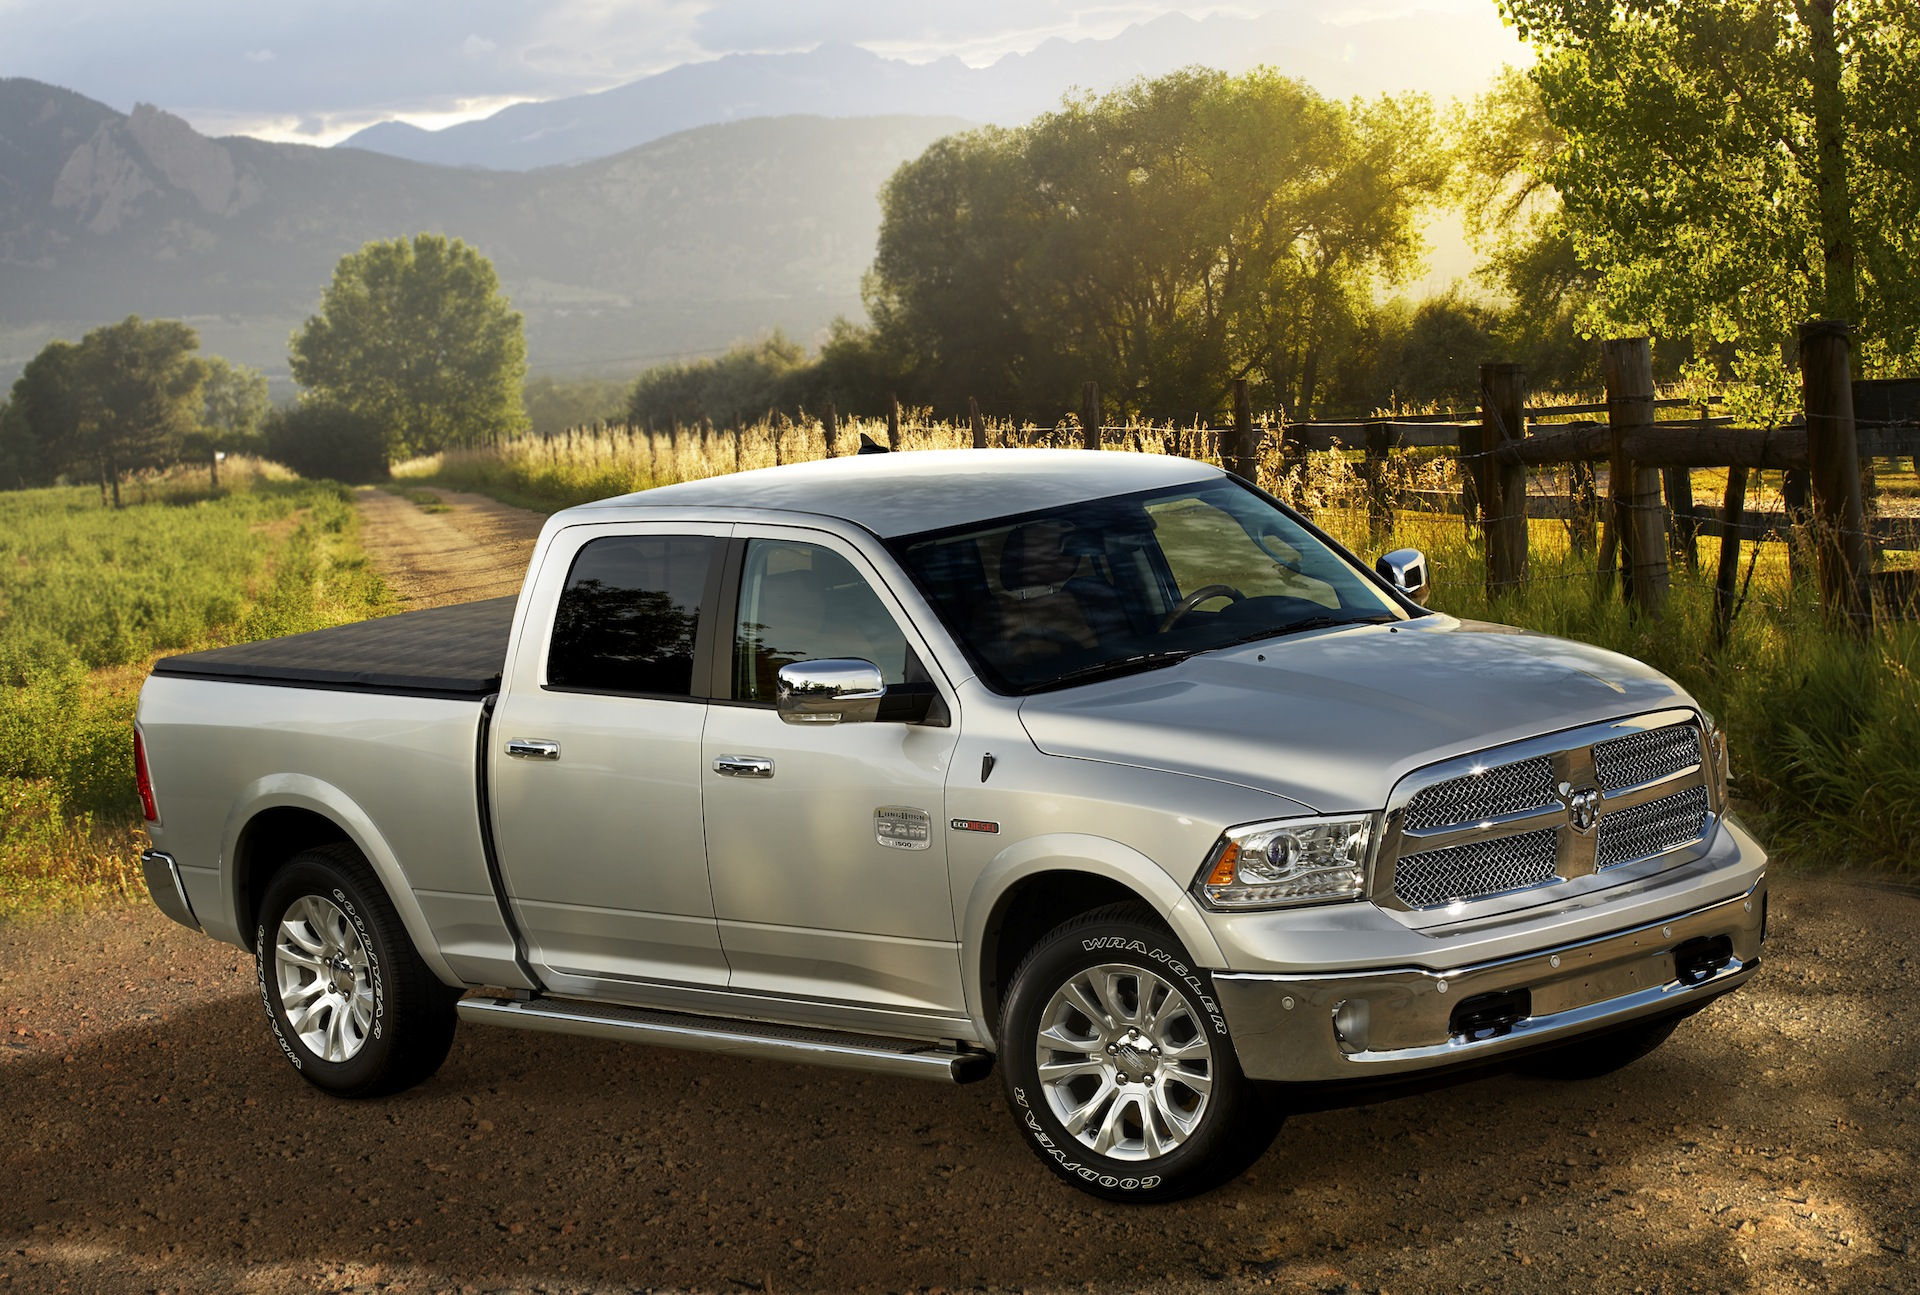 Diesel Pickup Trucks From Chevy Ford Nissan Ram Ultimate Guide